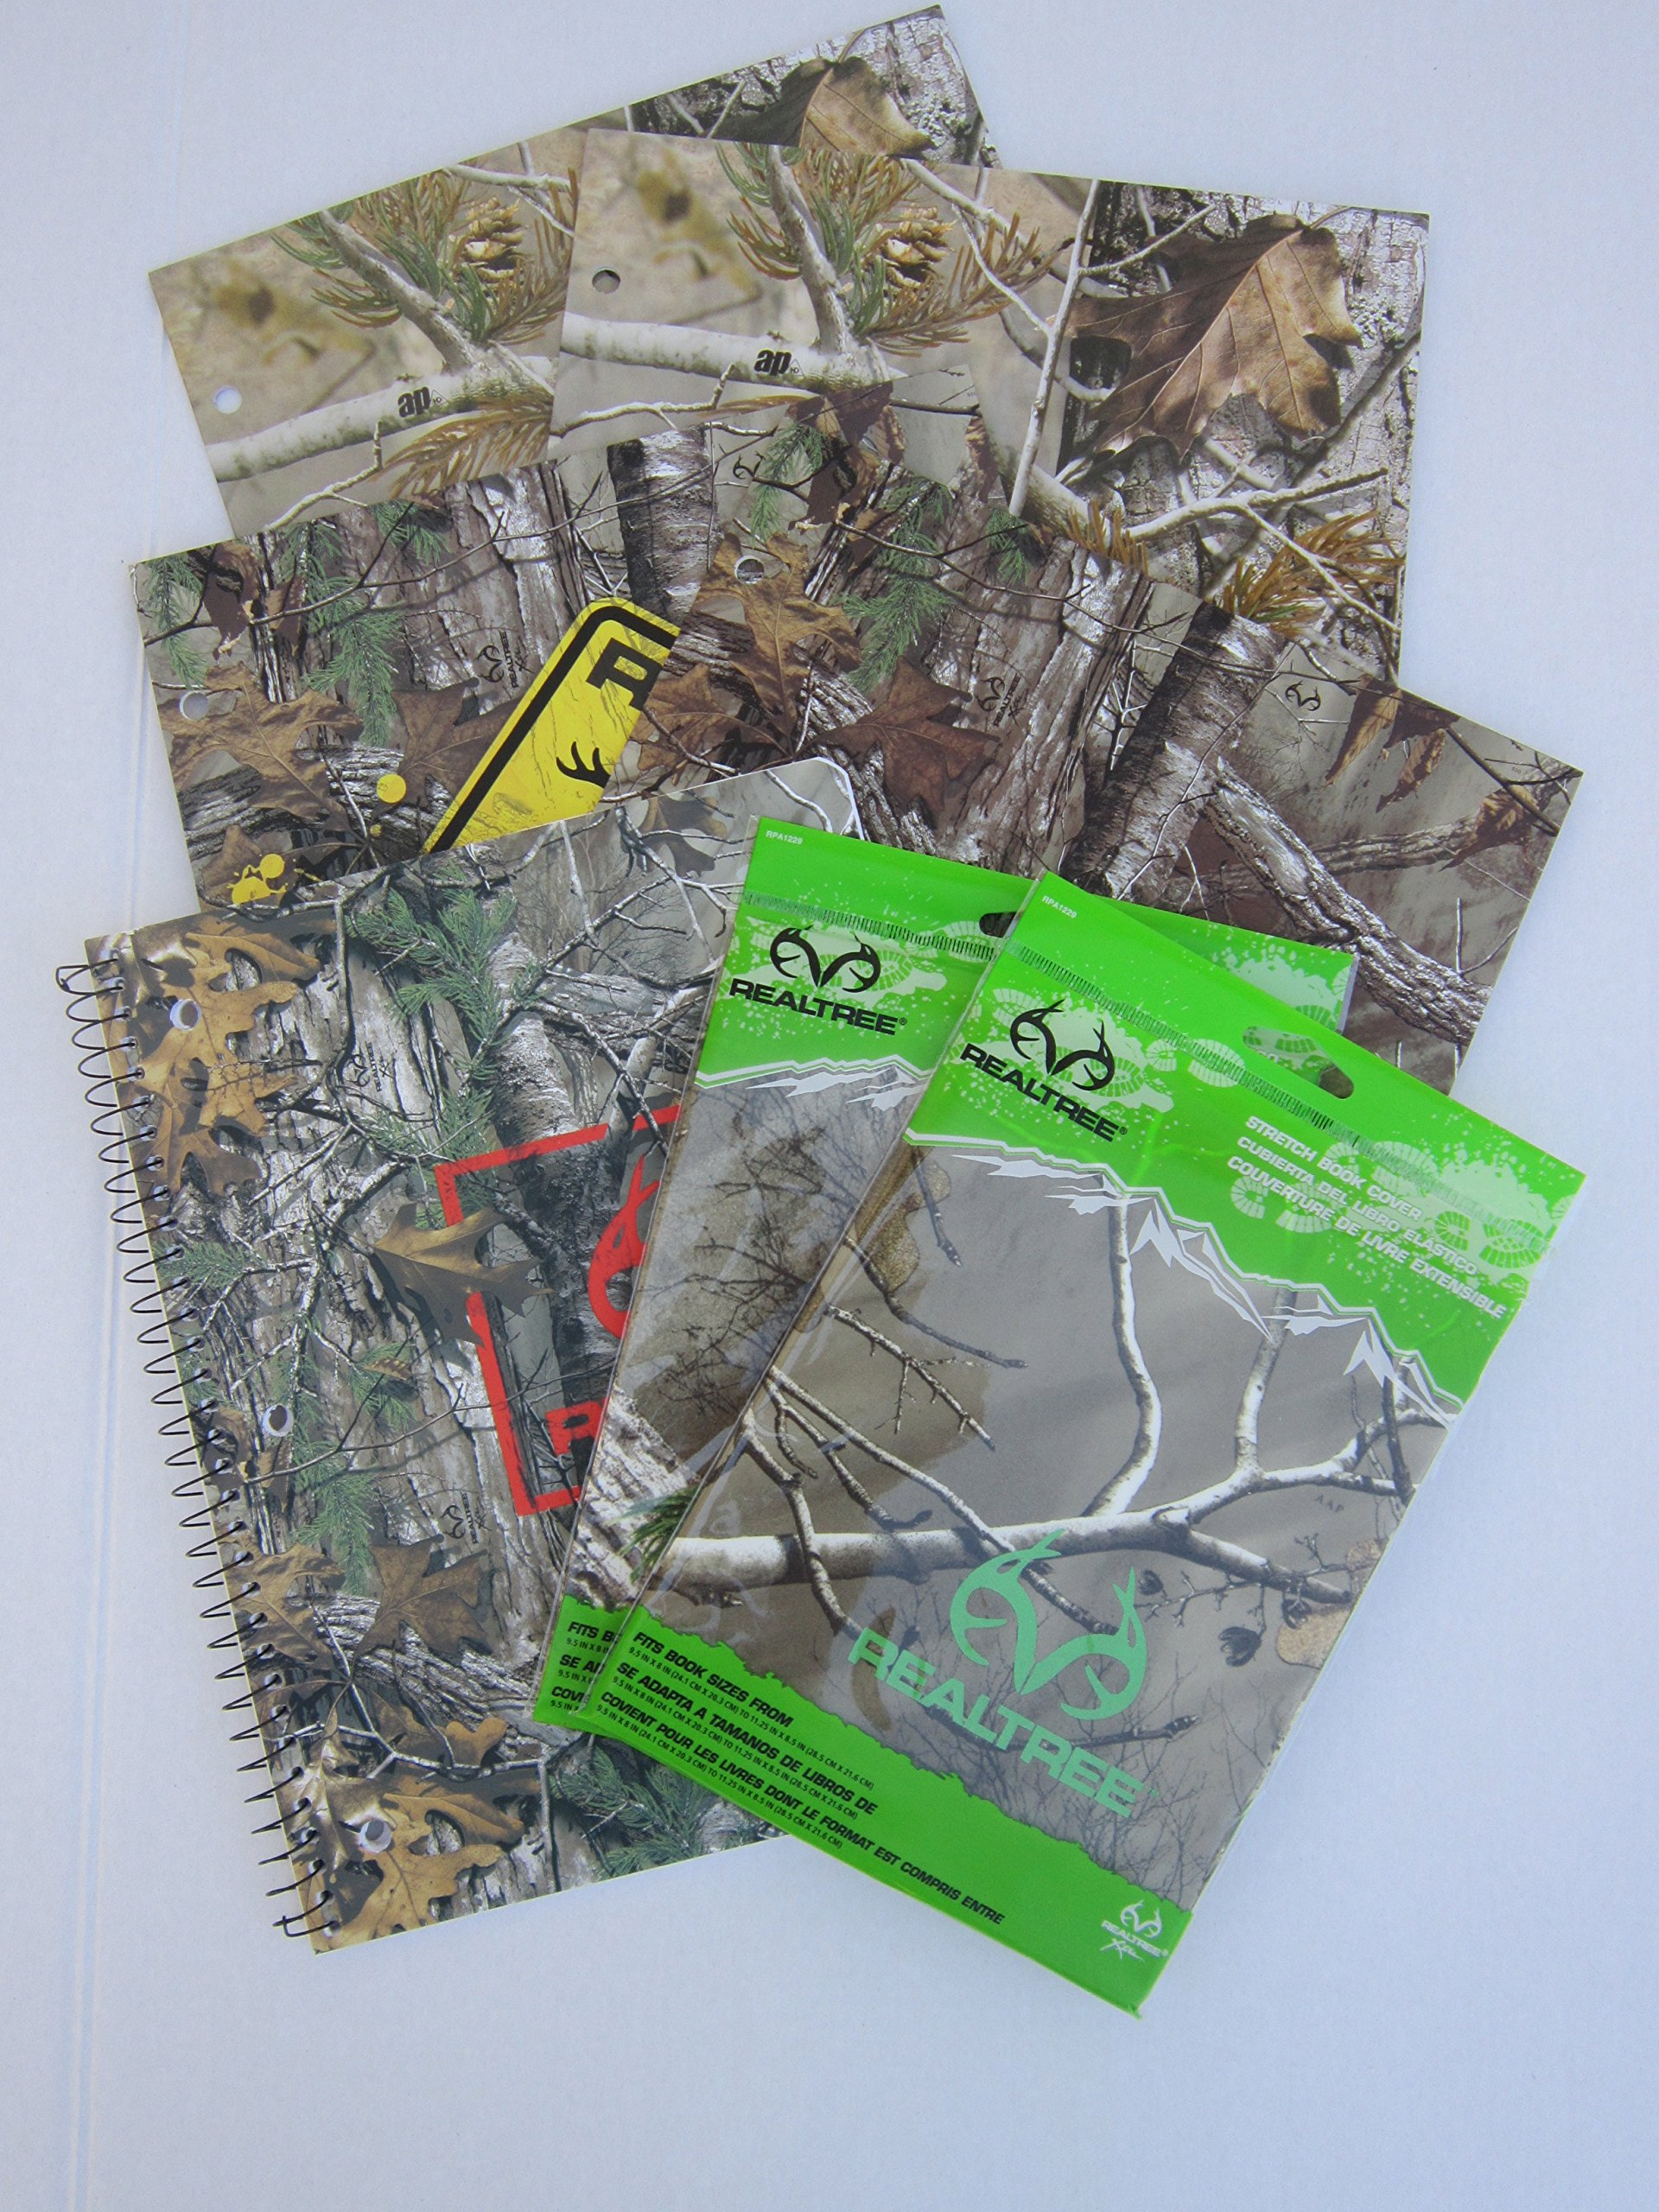 Realtree Outdoors Themed School Supply Bundle: 7 Items- Four Realtree Two Pocket Portfolios, Two Realtree Stretch Book Covers, Plus One Realtree Sprial 70 Page College Ruled Notebook